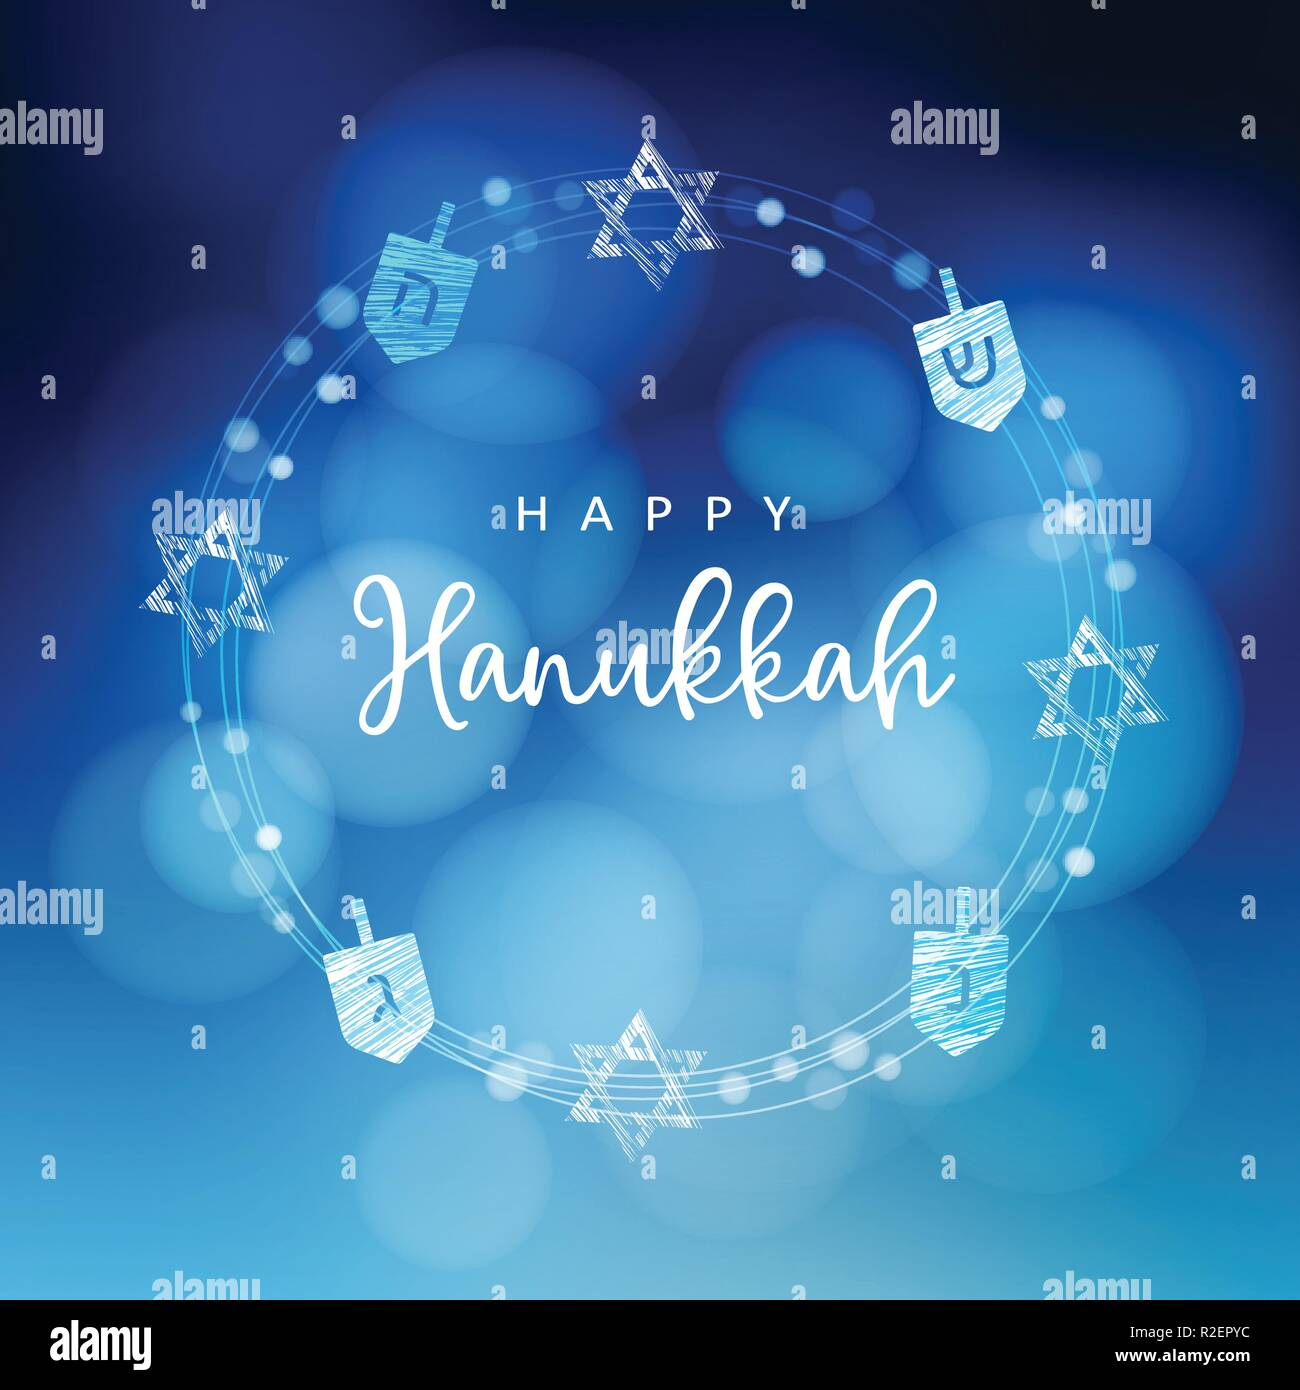 Hanukkah blue background with wreath of light, Jewish stars and dreidels. Festive party decoration. Modern blurred vector illustration for Jewish Festival of light. - Stock Vector